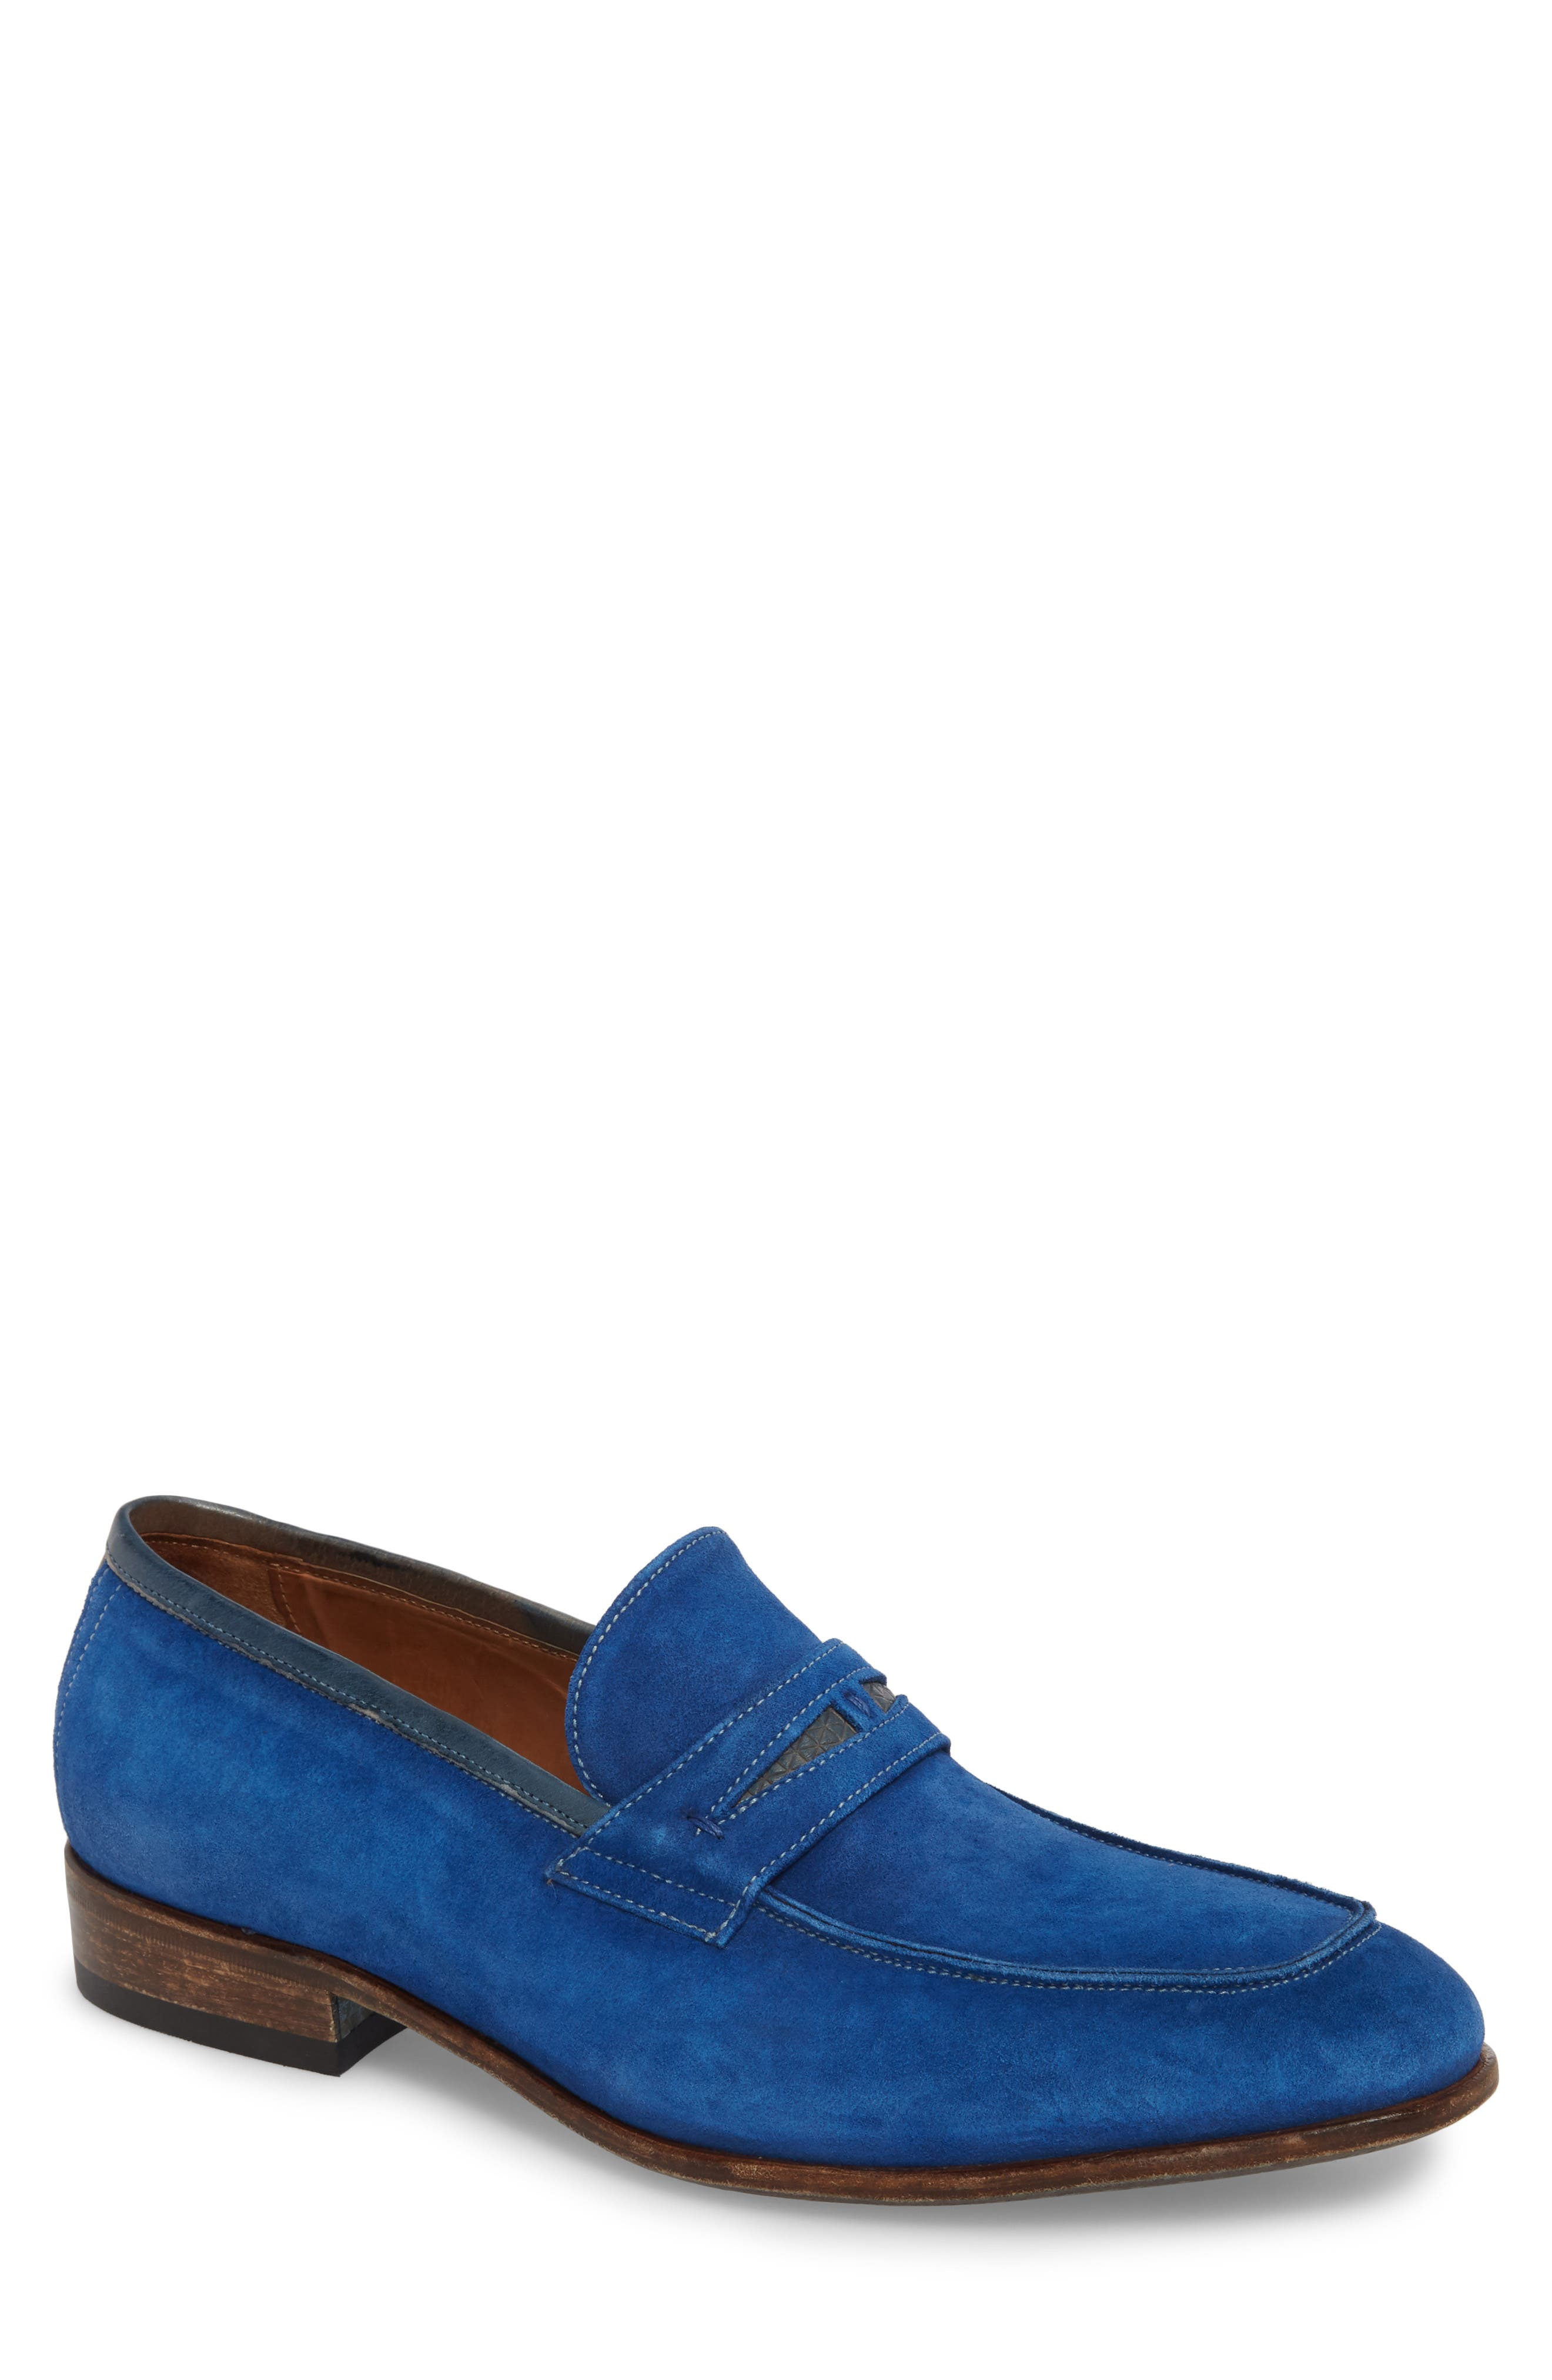 Lex Apron Toe Penny Loafer,                             Main thumbnail 2, color,